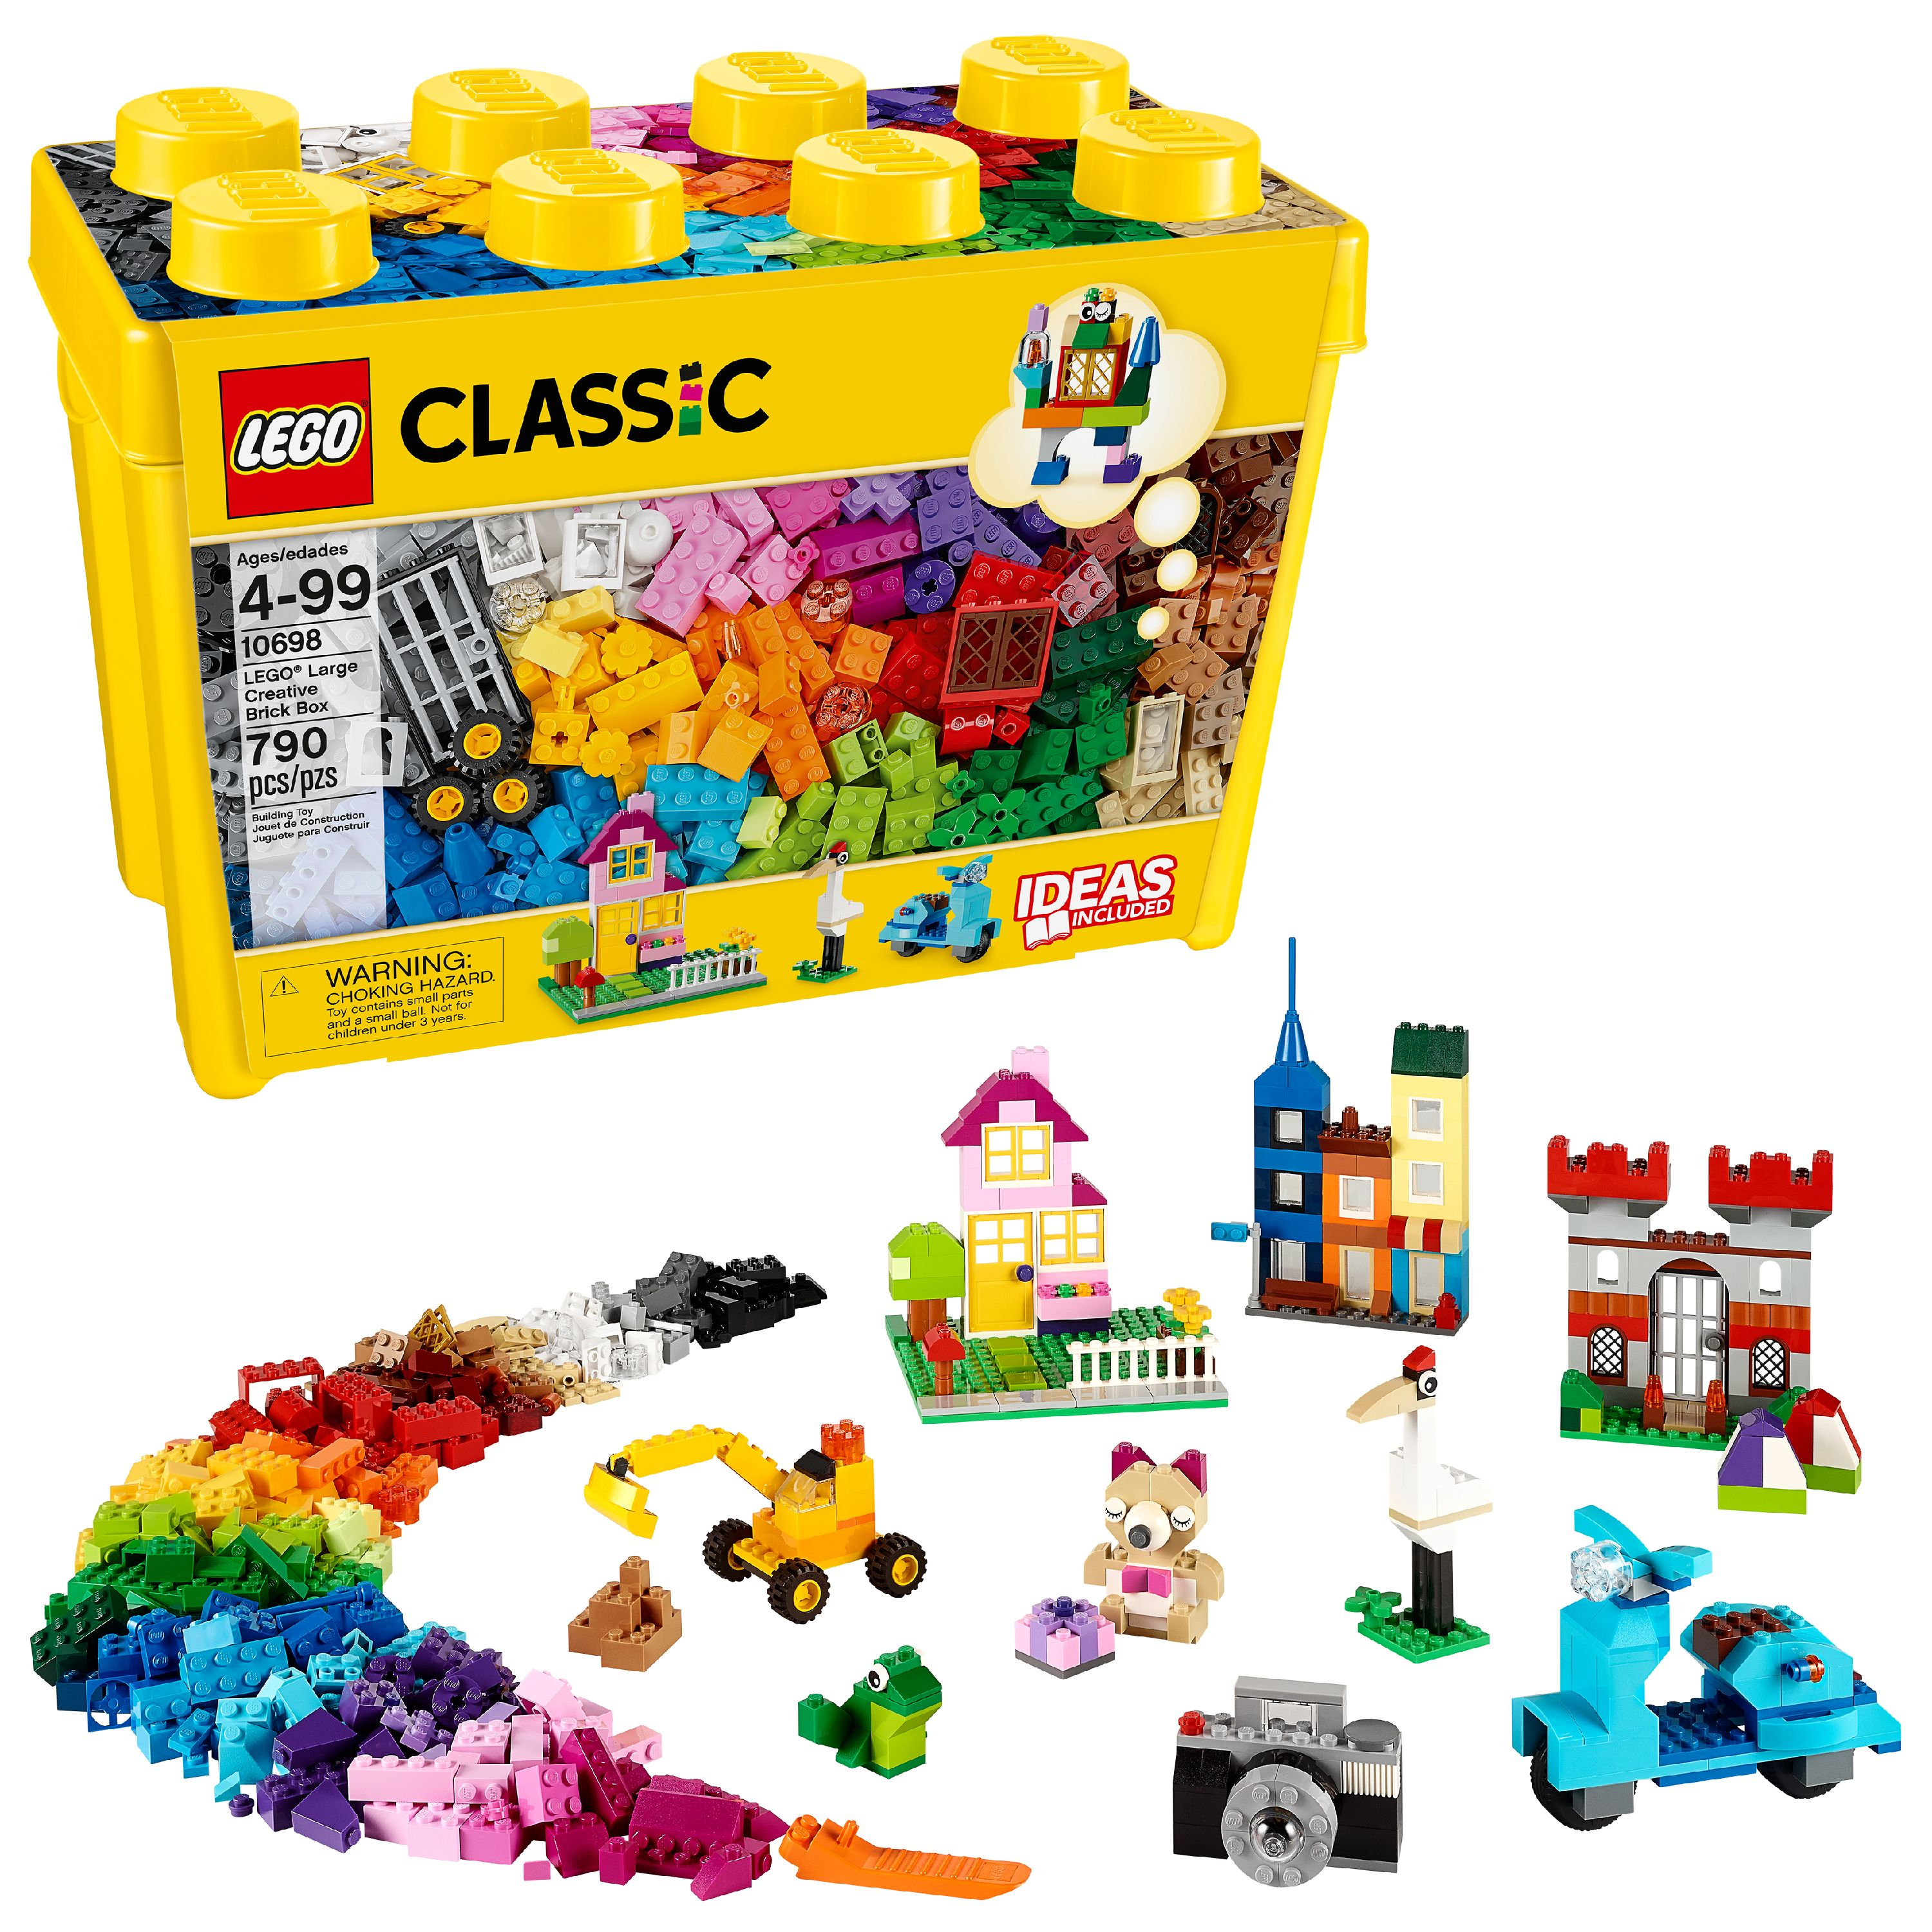 LEGO Classic Large Creative Brick Box 10698 (790 Pieces)